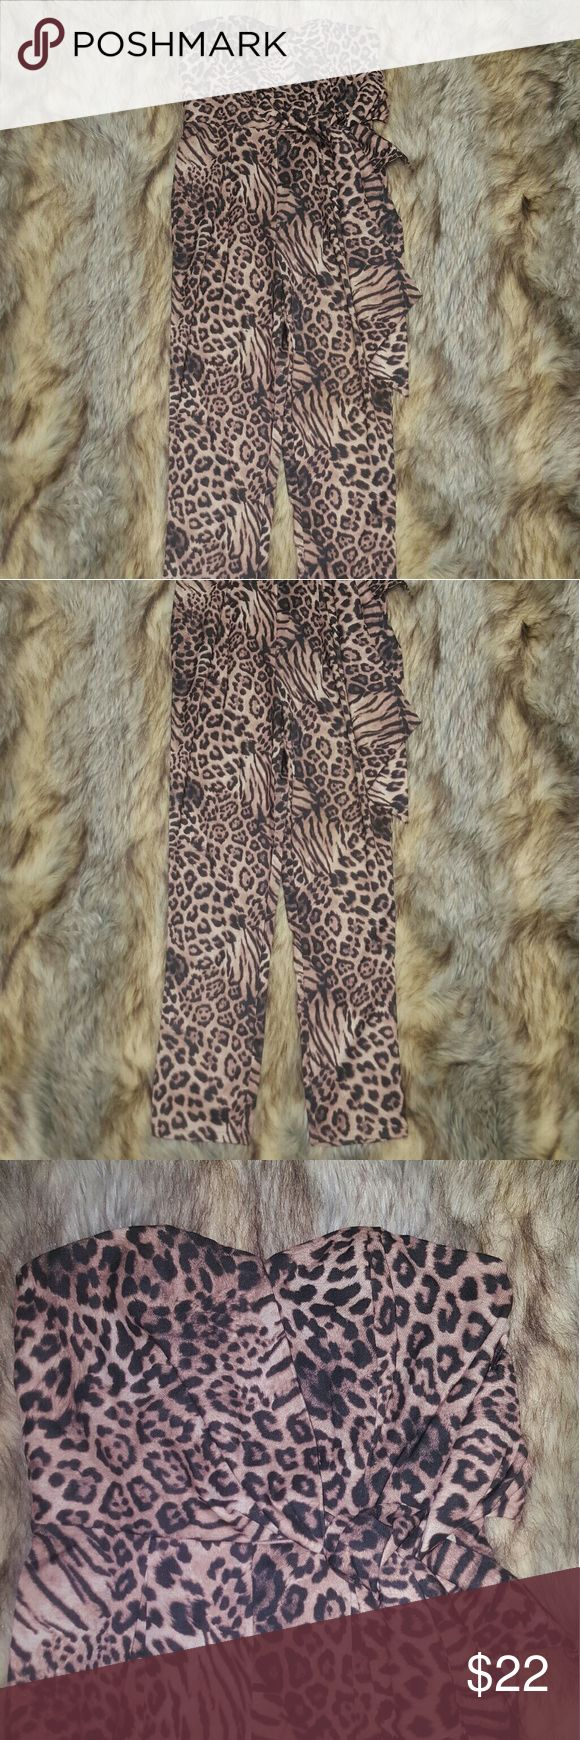 NWT $42 Mustard Seed Sz S Animal Print Jump Suit New with tags $42 Mustard Seed Sz S animal print jumpsuit, zip back, wrap tie under bust area, built in boning in bust. Mustard Seed Pants Jumpsuits & Rompers